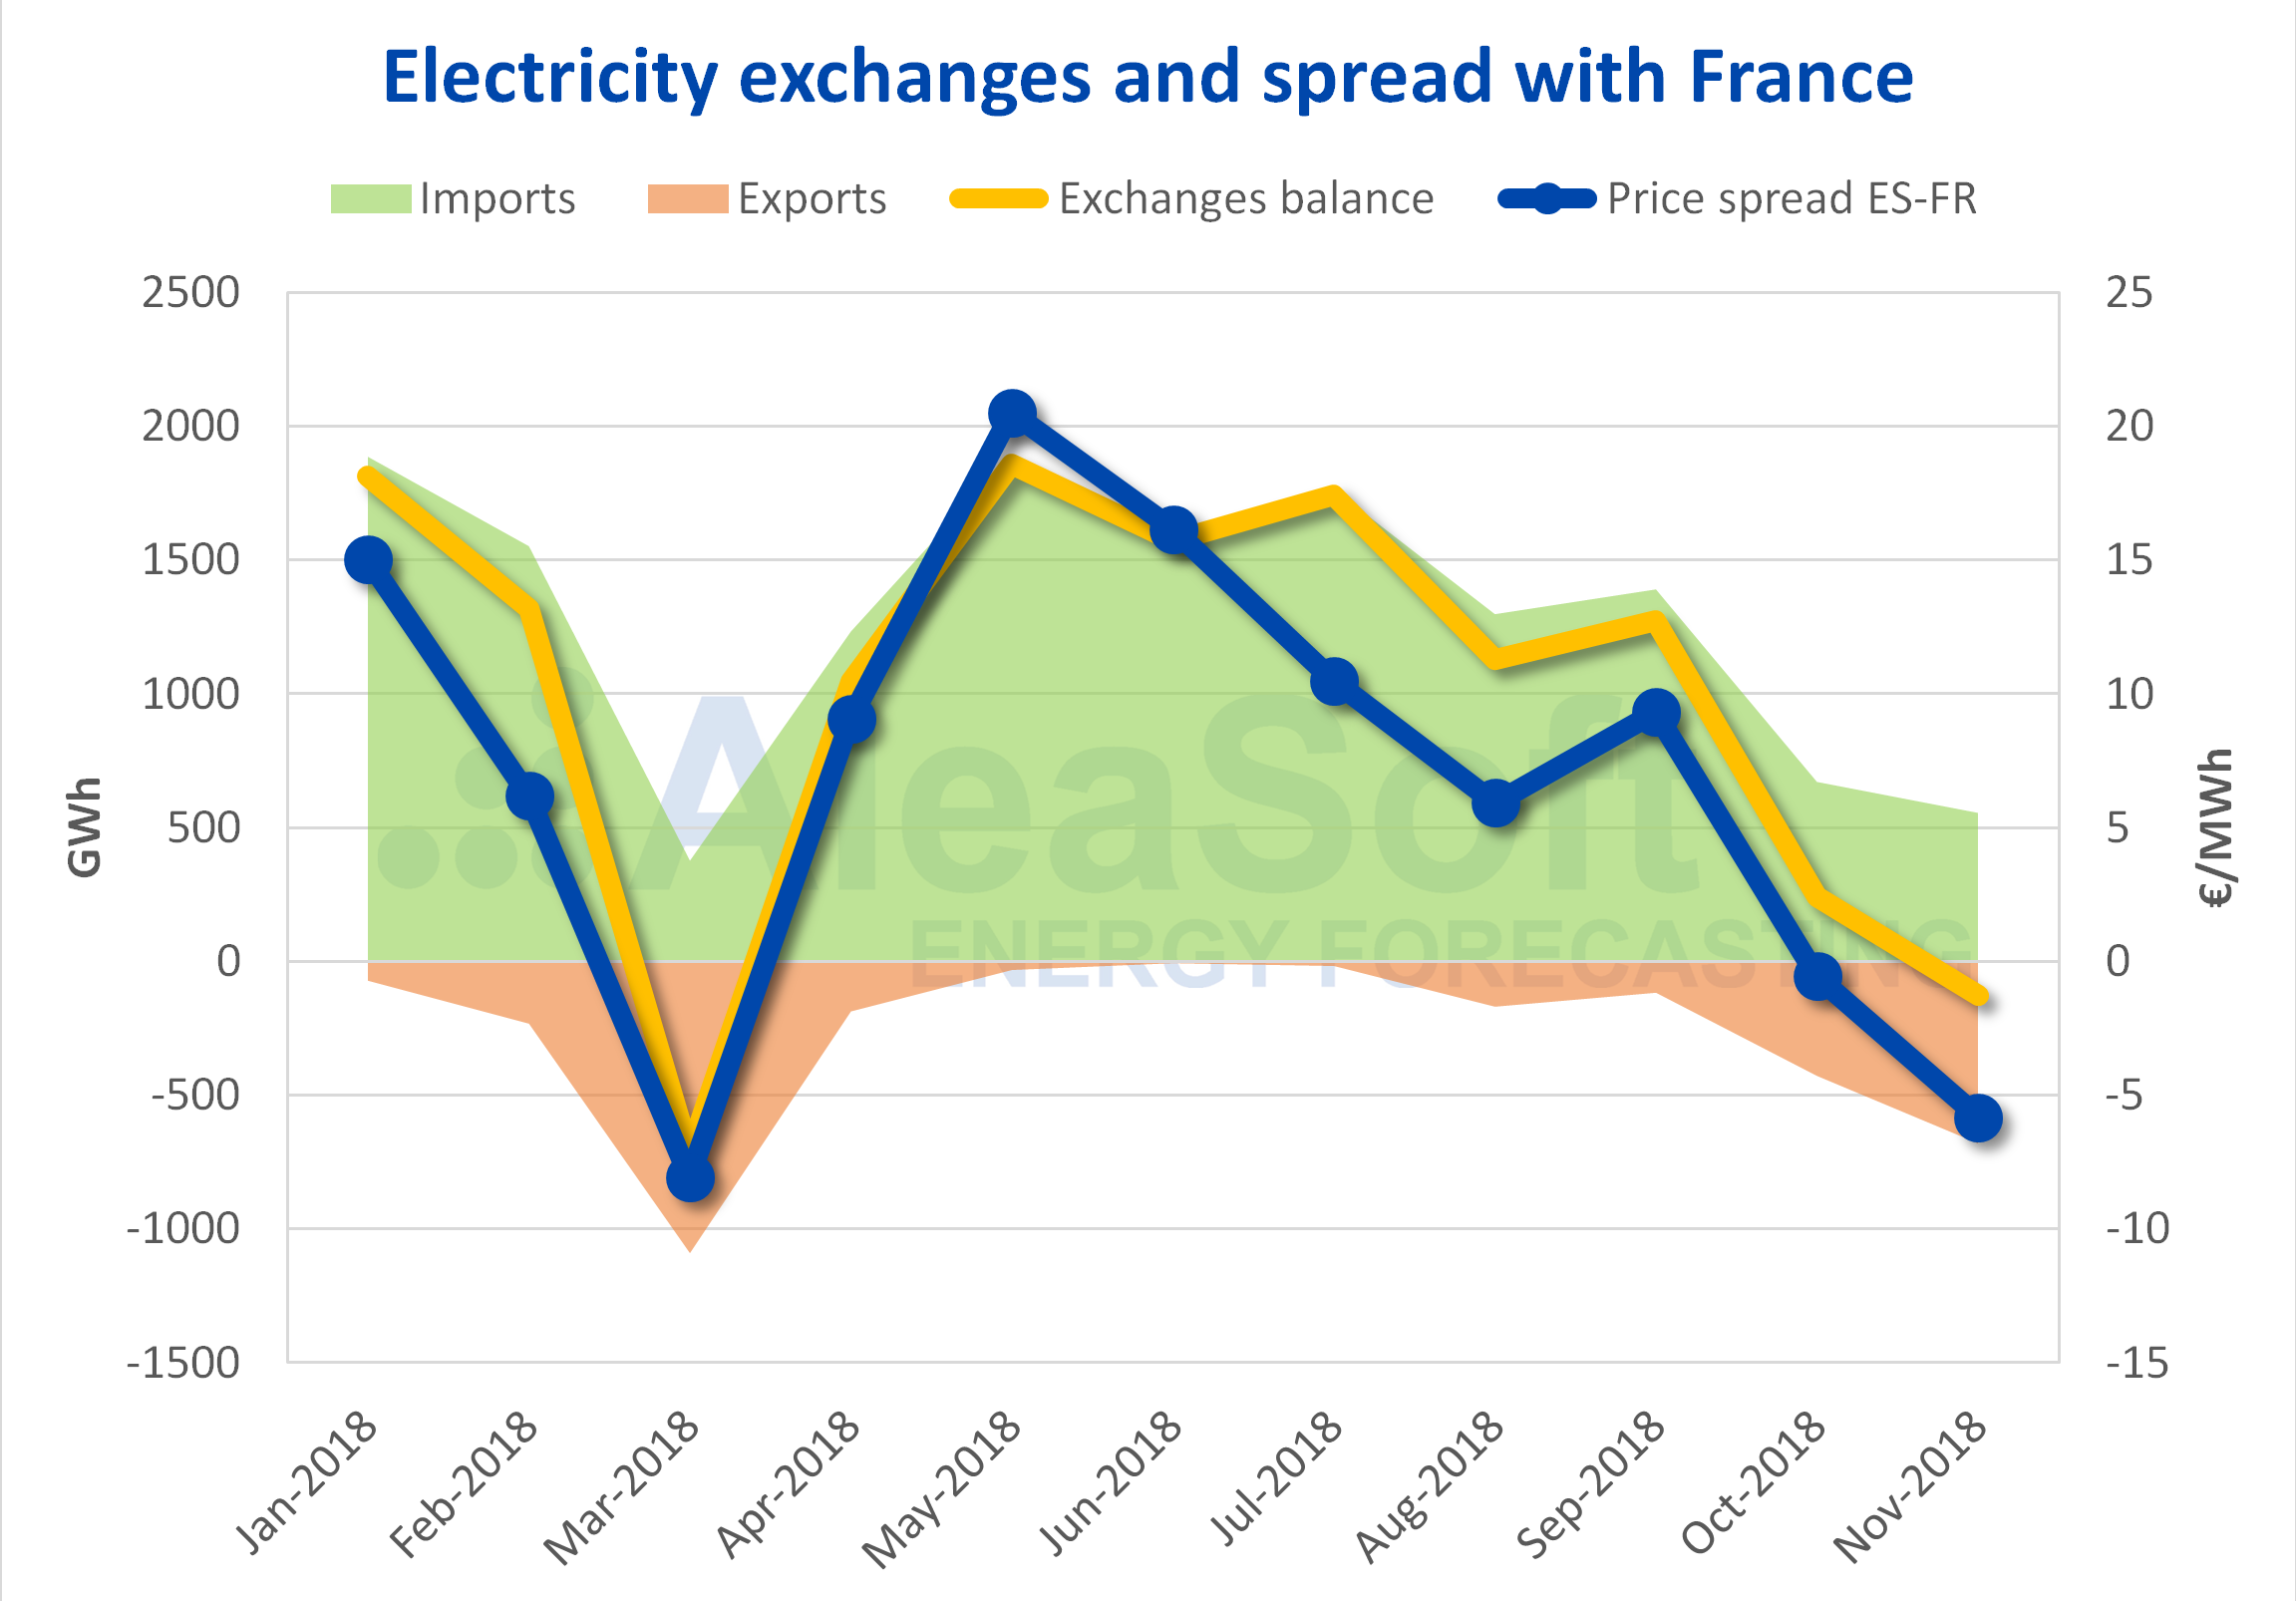 AleaSoft - Electricity exchange spread Spain France